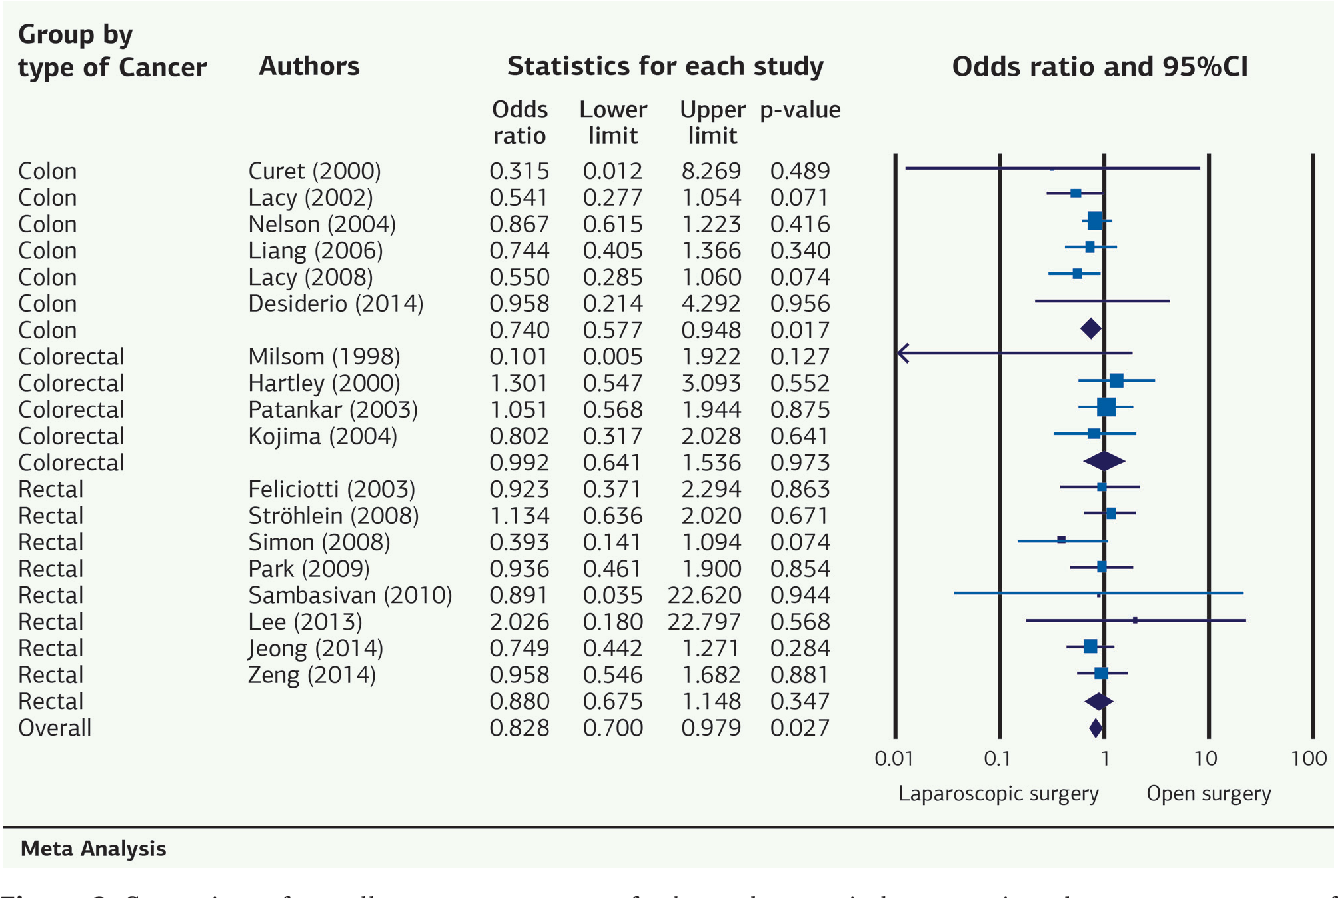 Pdf Comparison Of Recurrence Patterns Of Colorectal Cancer In Laparoscopic And Open Surgery Groups Of Patients A Meta Analysis Semantic Scholar